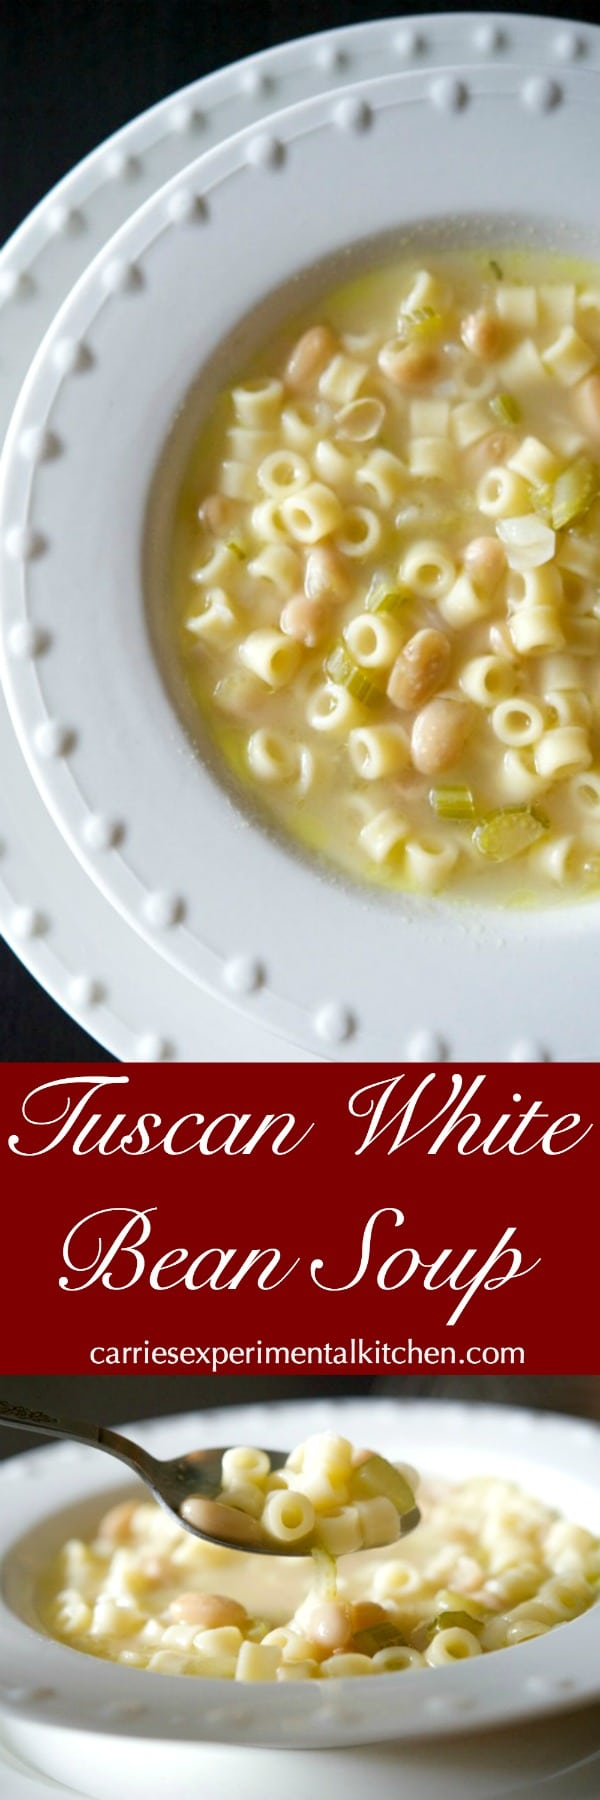 Tuscan White Bean Soup is a hearty, delicious Italian soup made with simple ingredients like celery, cannellini beans, Ditalini pasta and chicken broth. #soup